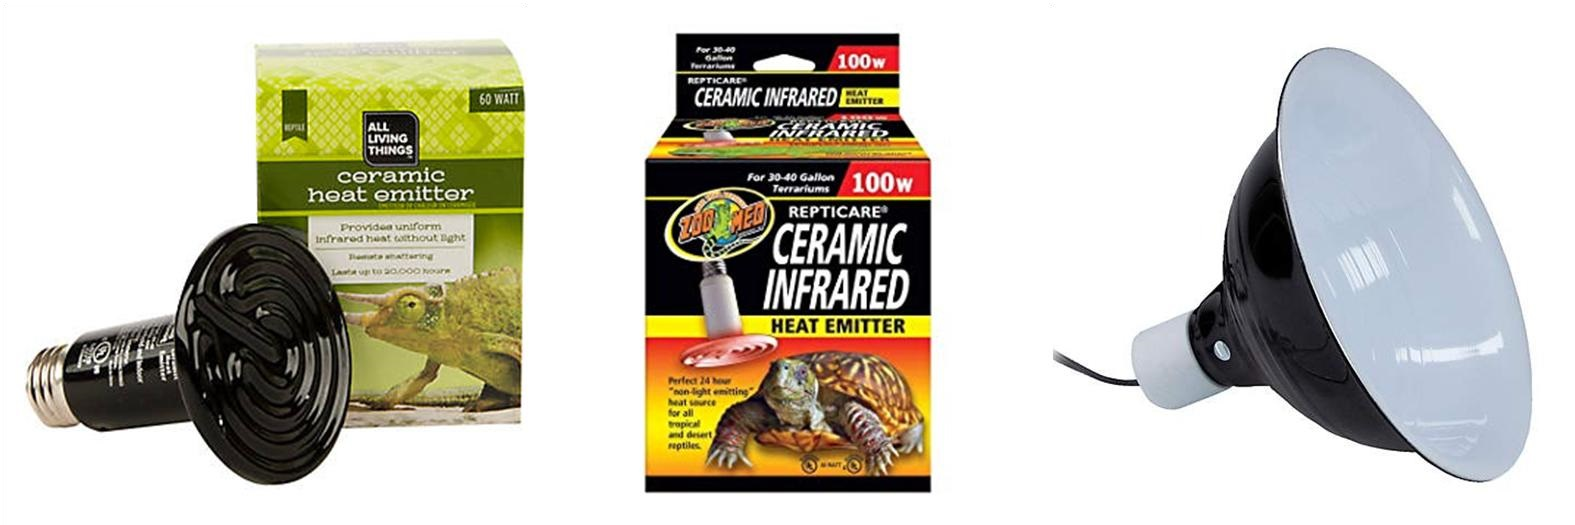 Recommended heating options: All Living Things Ceramic Heat Emitter, Zoo Med Ceramic Heat Emitter, and All Living Things Heat Lamp.